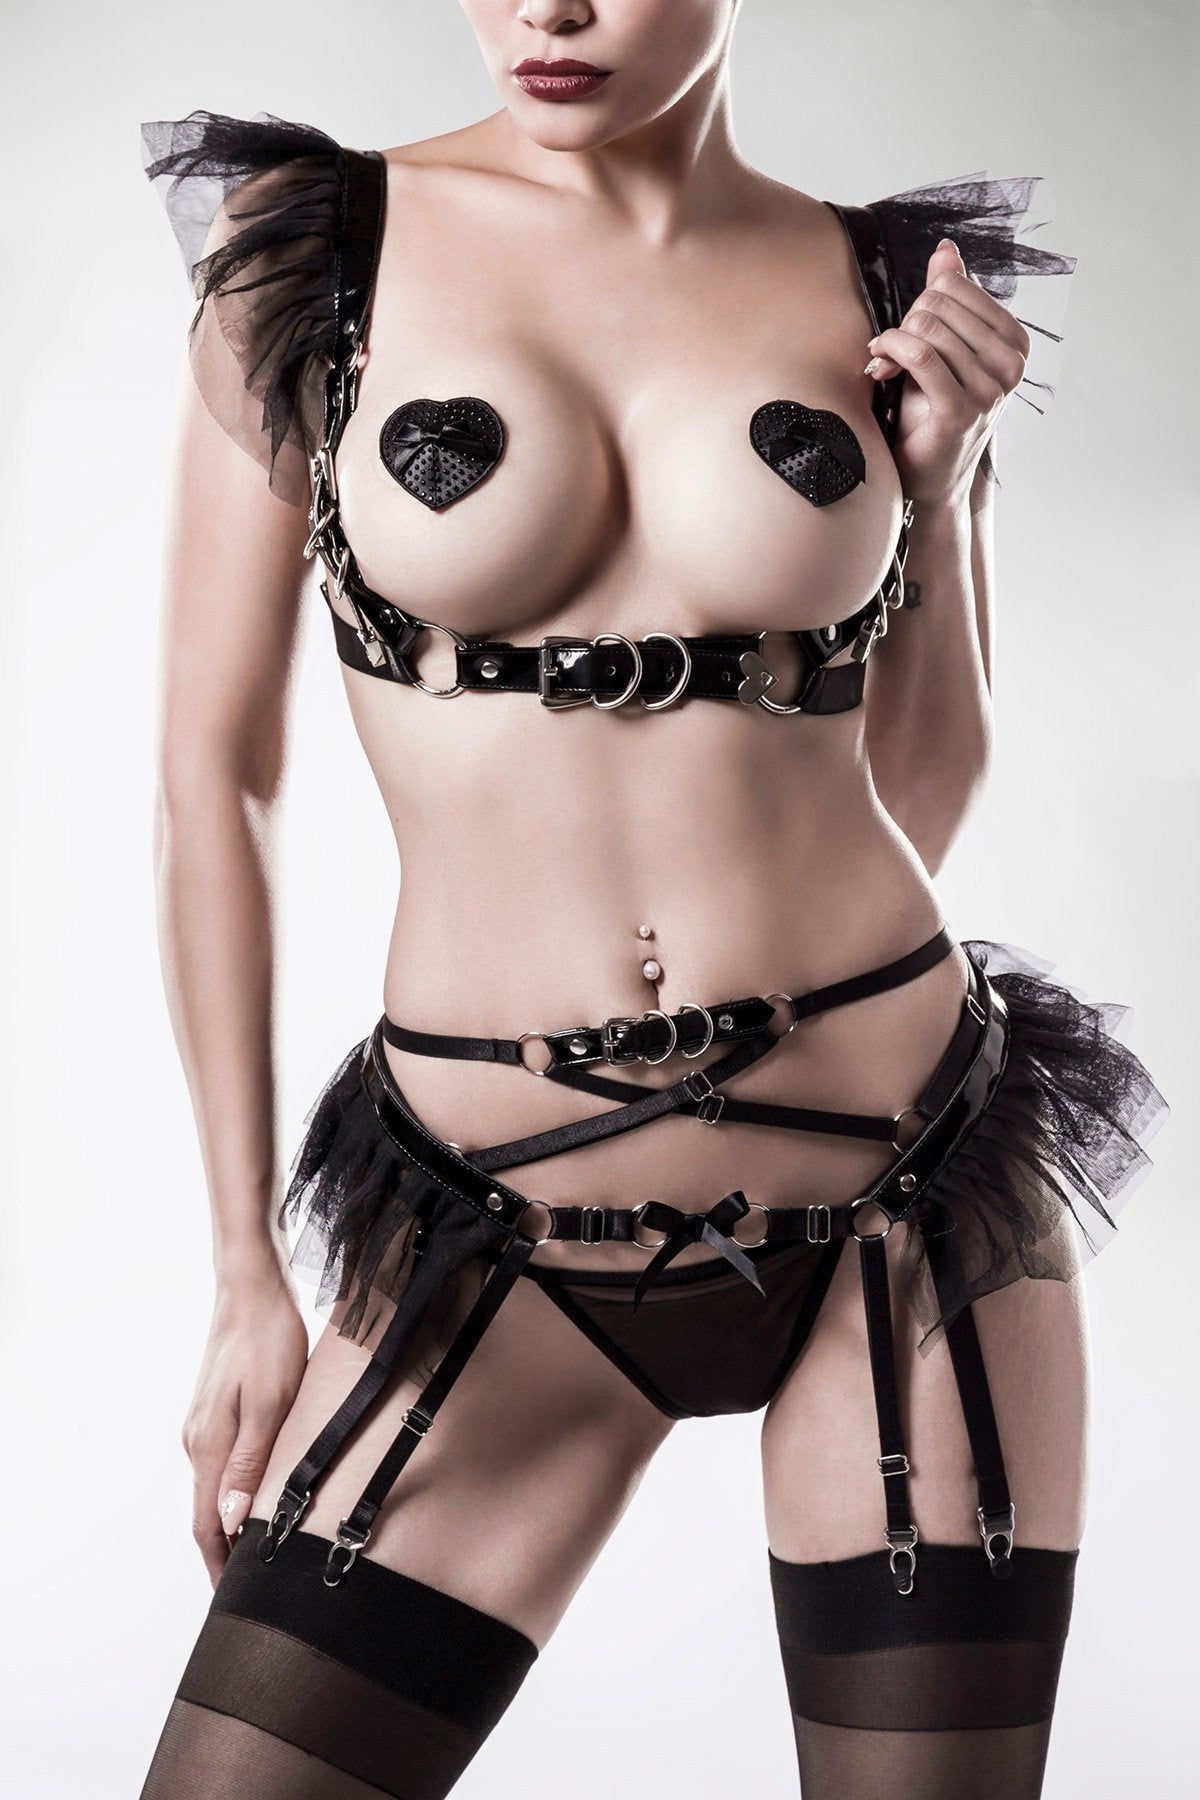 Grey Velvet Erotic 4 Piece Lingerie Set